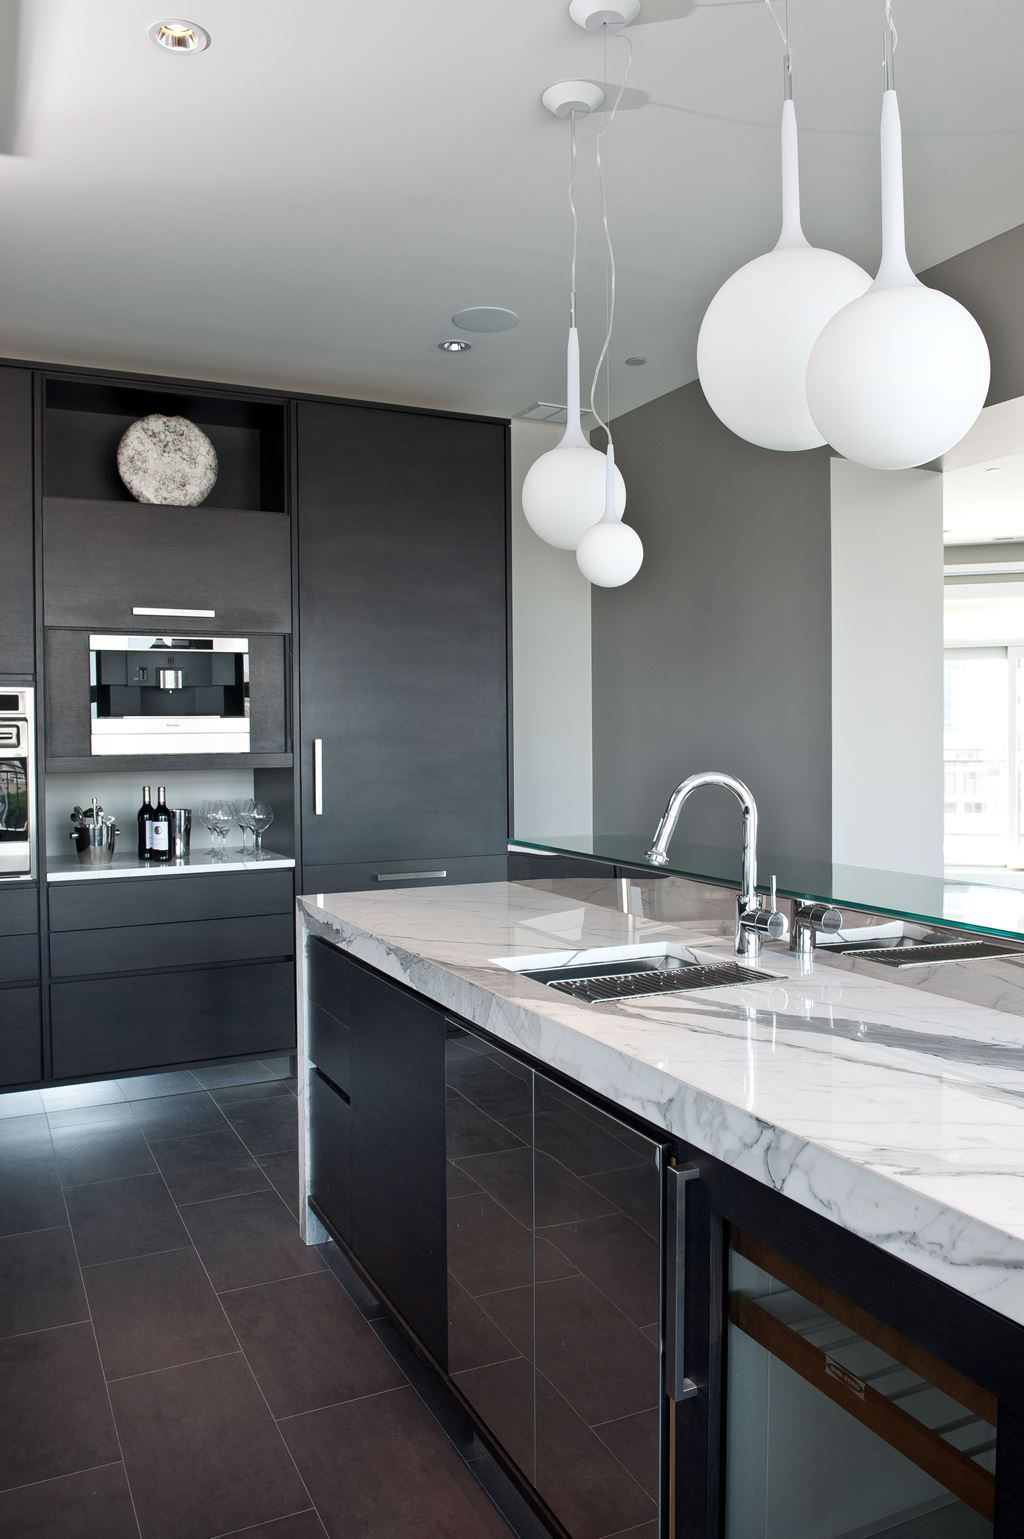 En Fuego | Sub-Zero, Wolf, and Cove Kitchens (With images ...